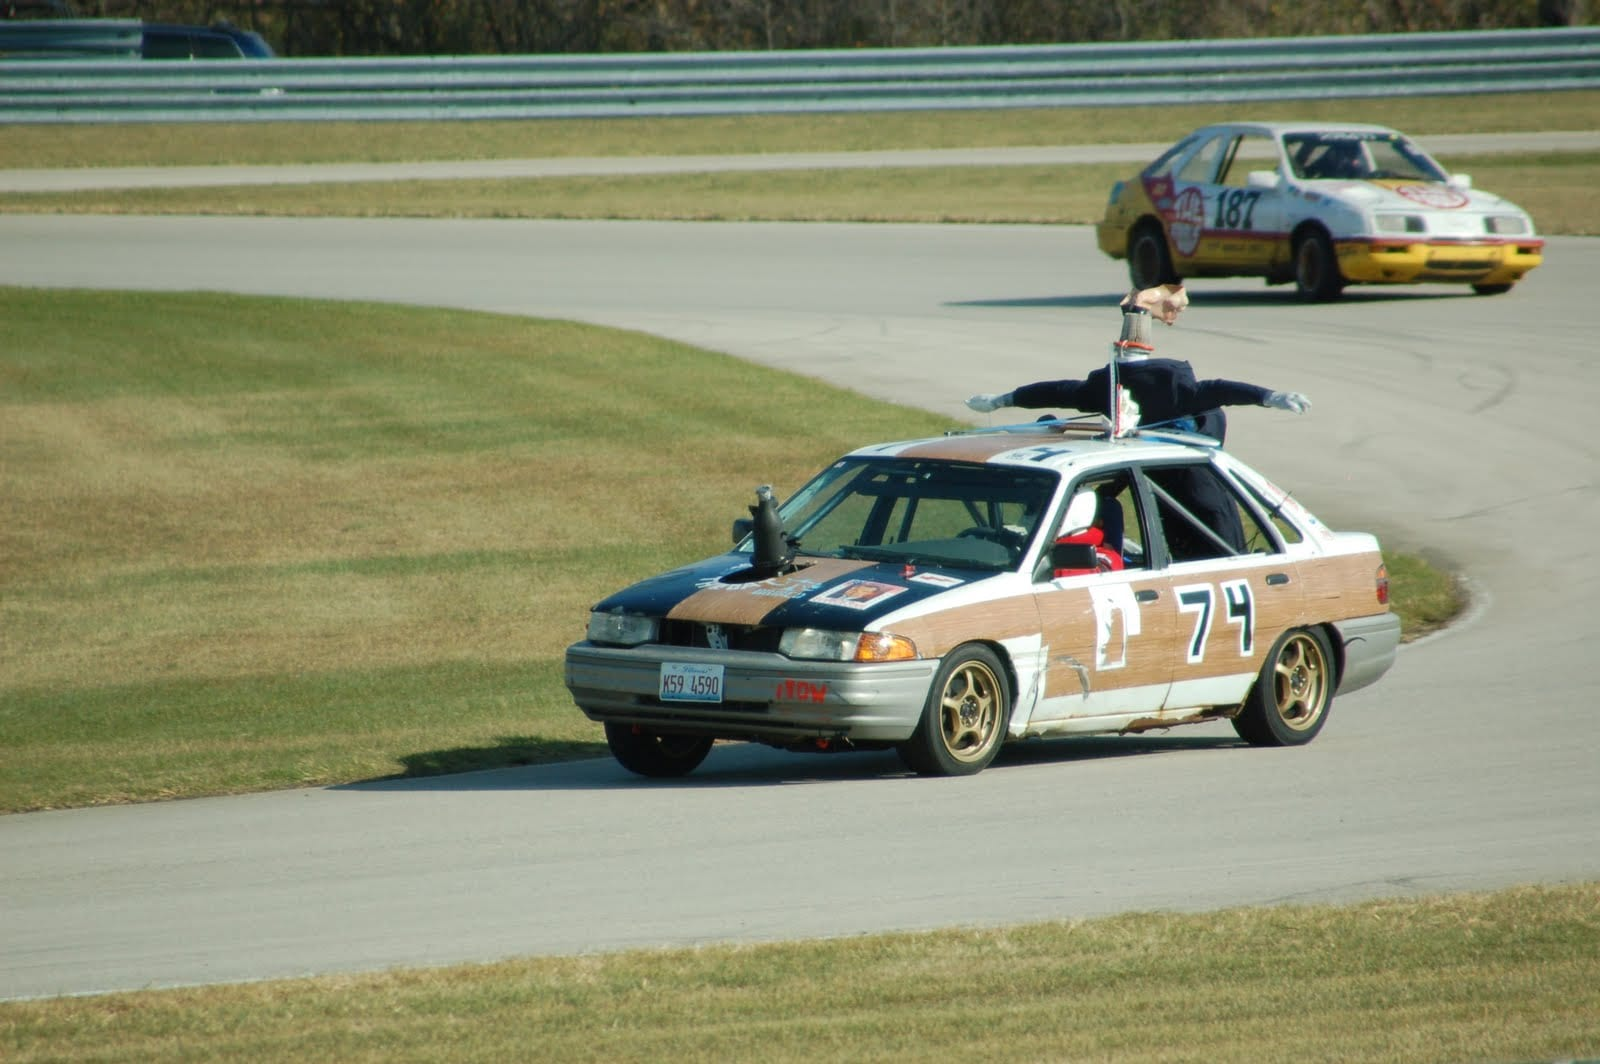 Ford Escort on race track